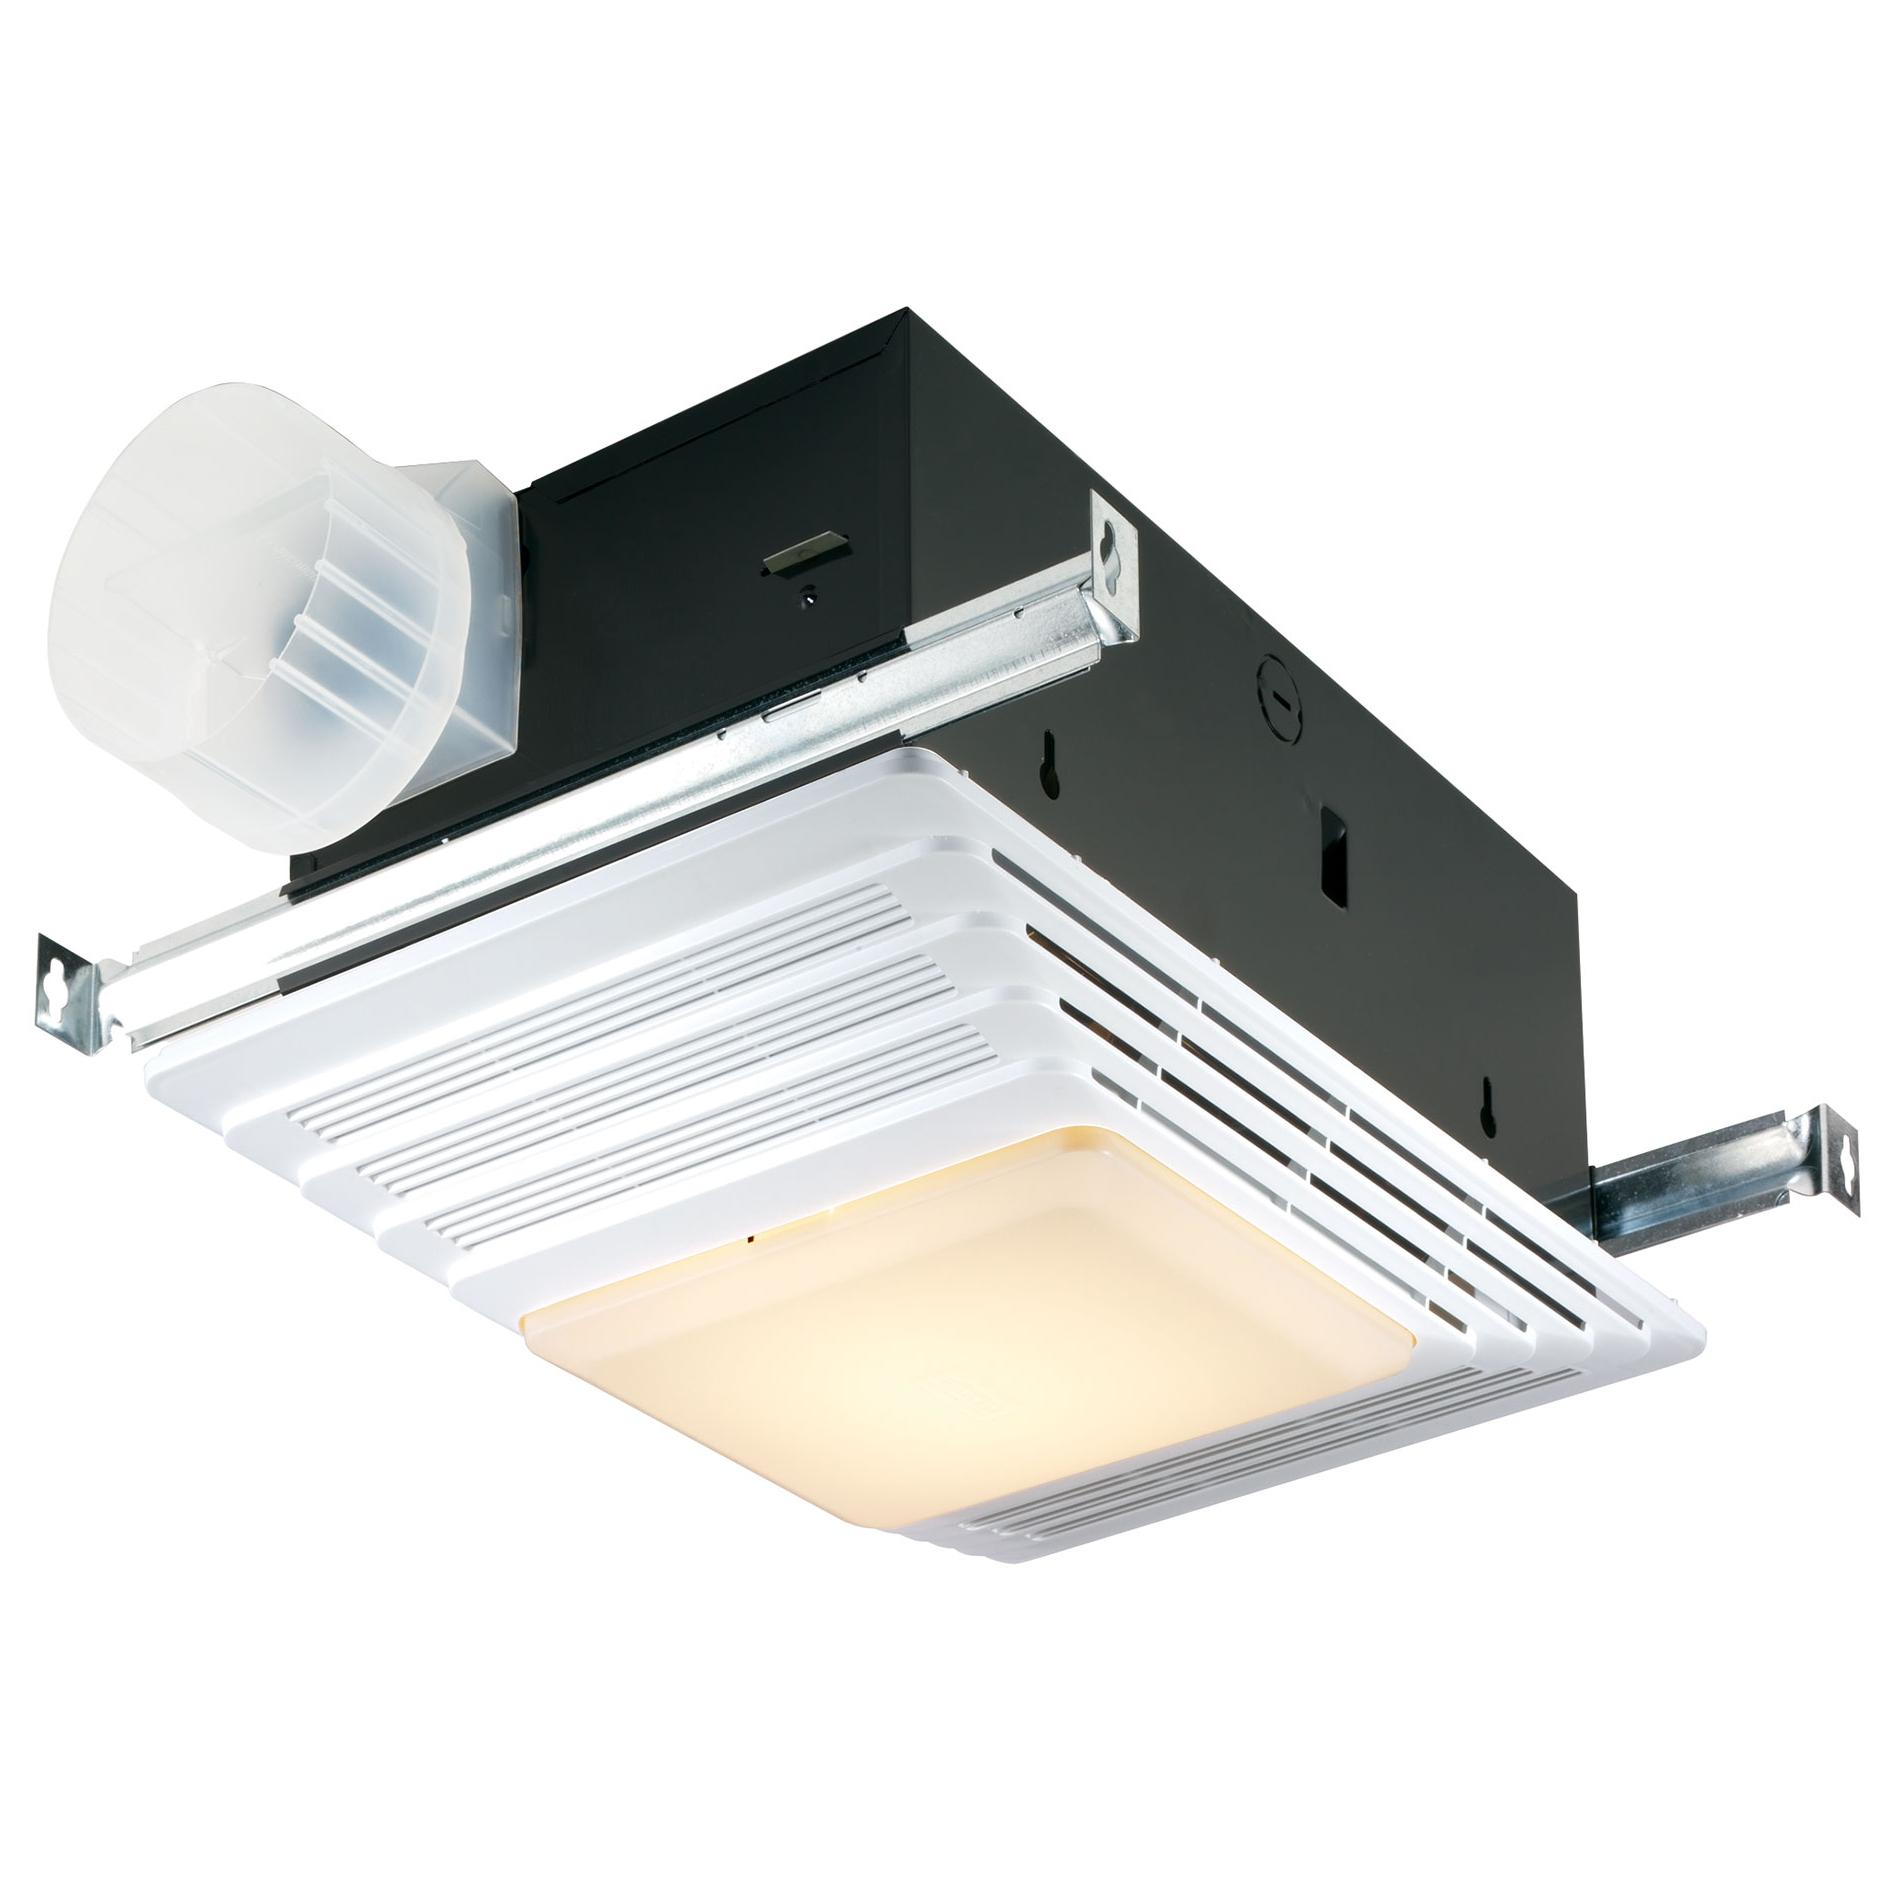 bathroom heater light combination broan 655 heater and heater bath fan with light 16004